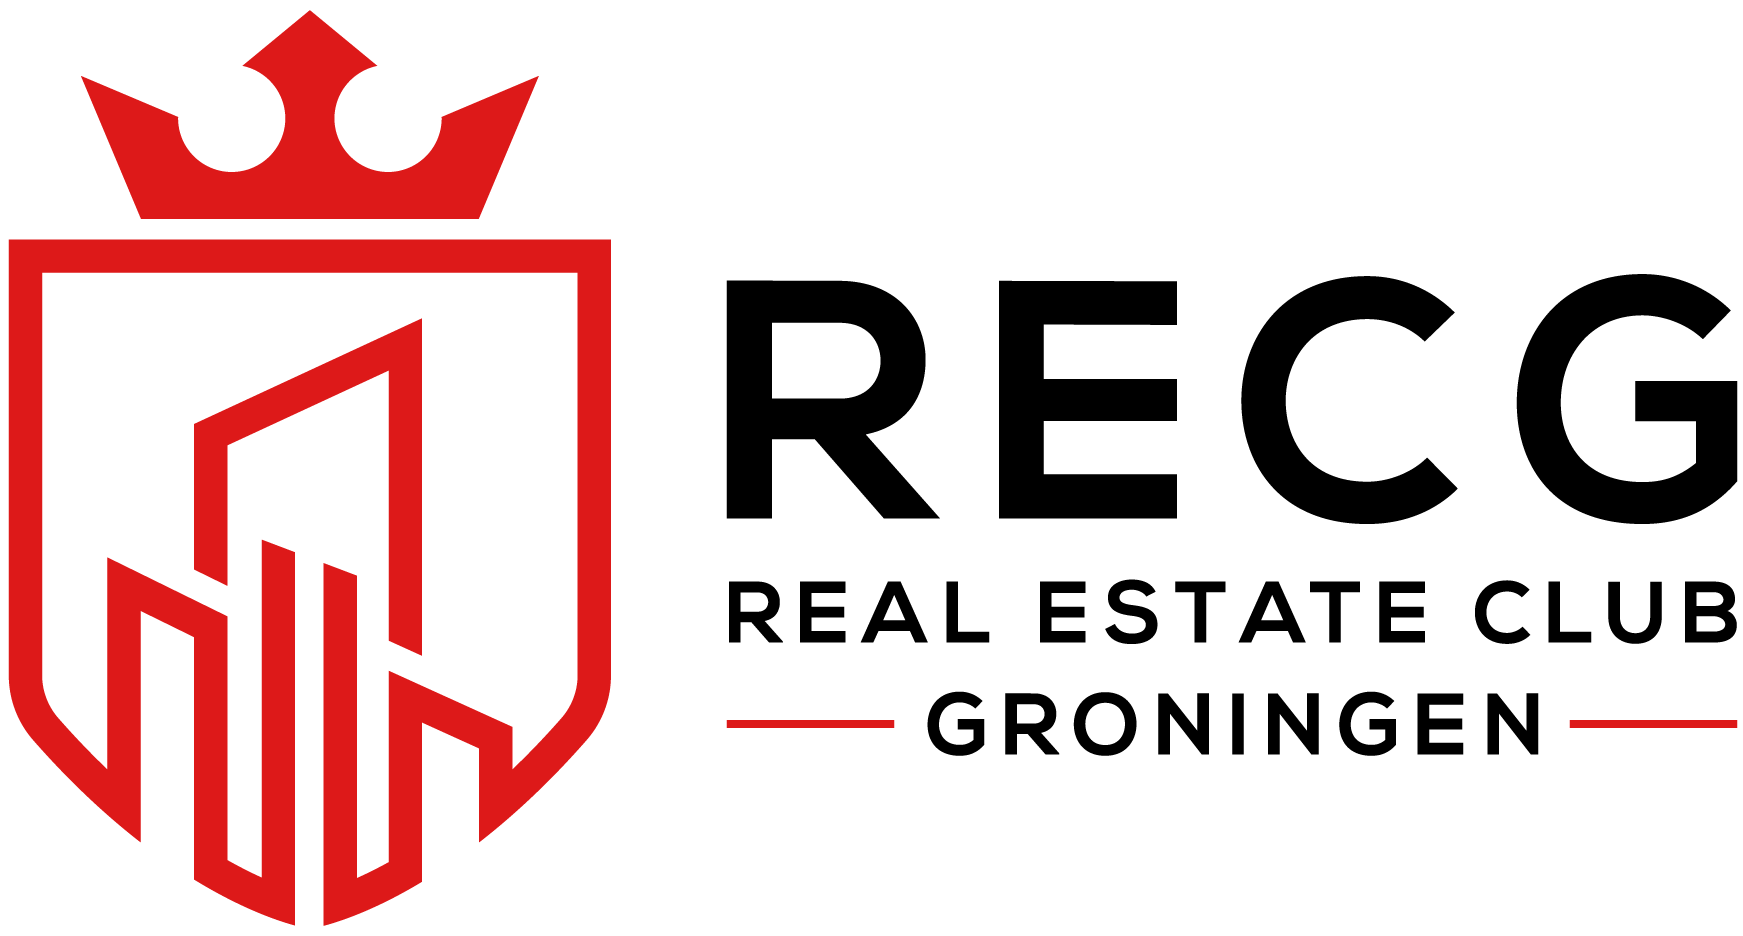 Real Estate Club Groningen